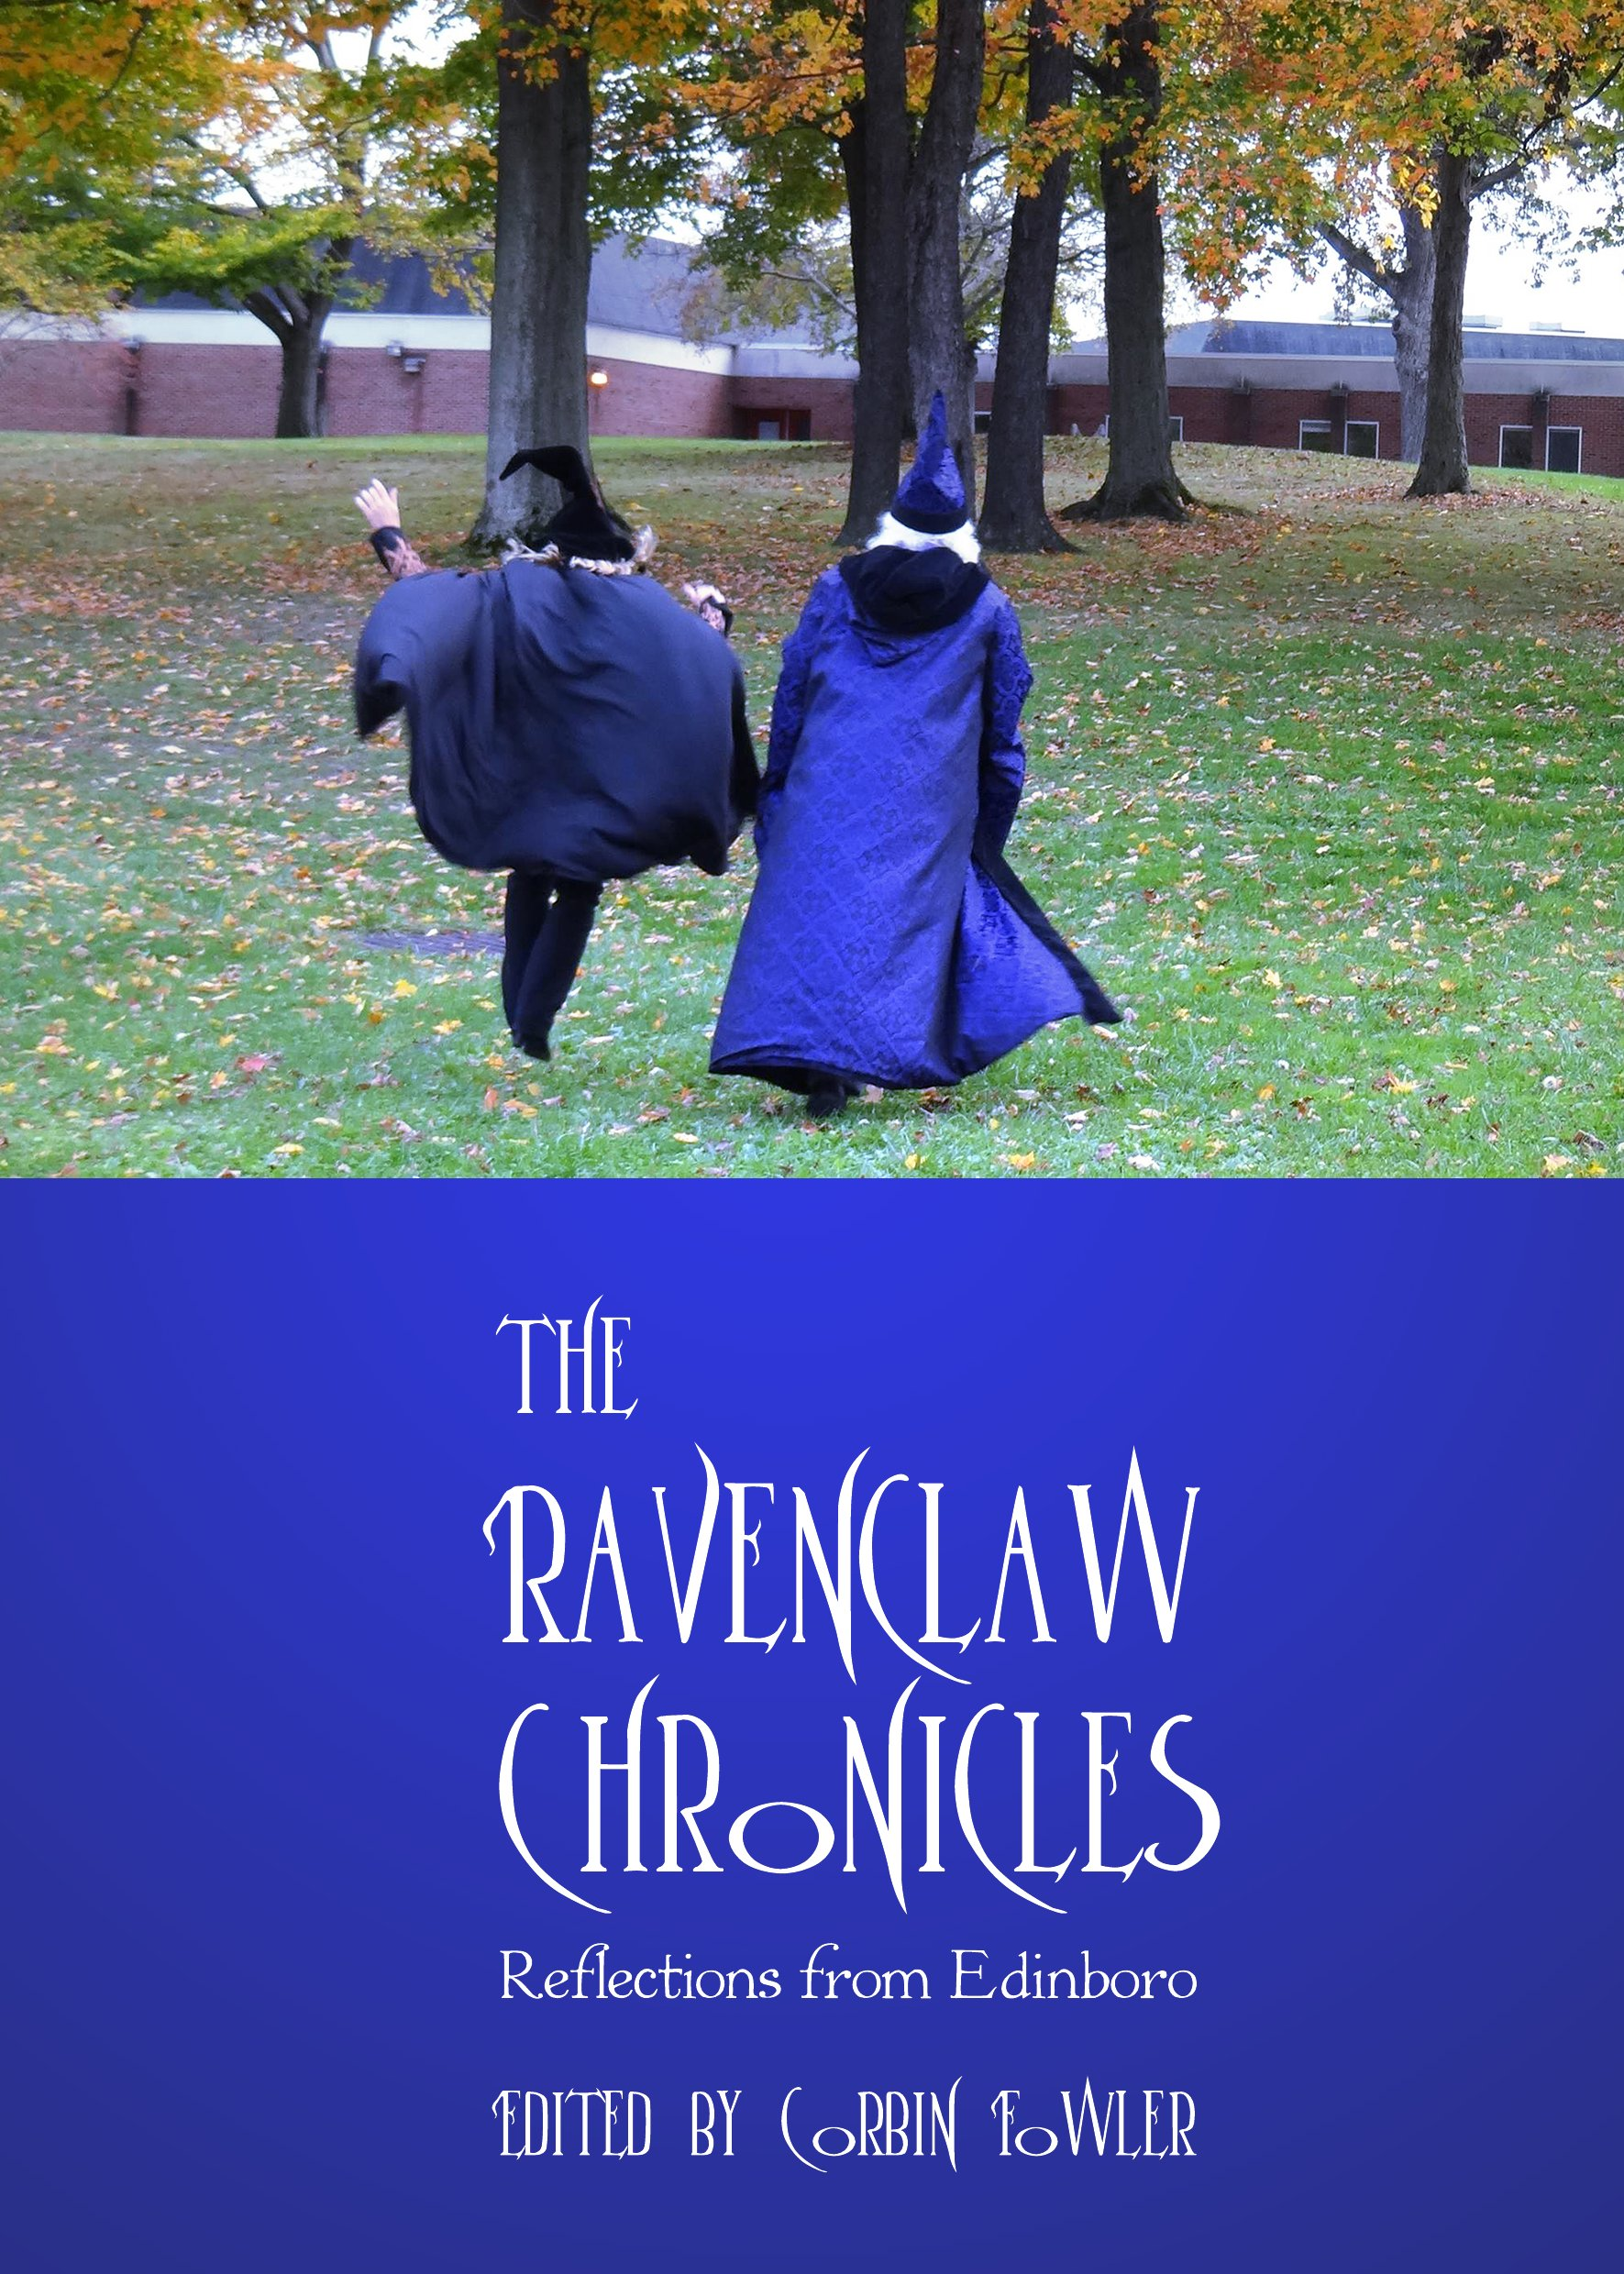 The Ravenclaw Chronicles: Reflections from Edinboro